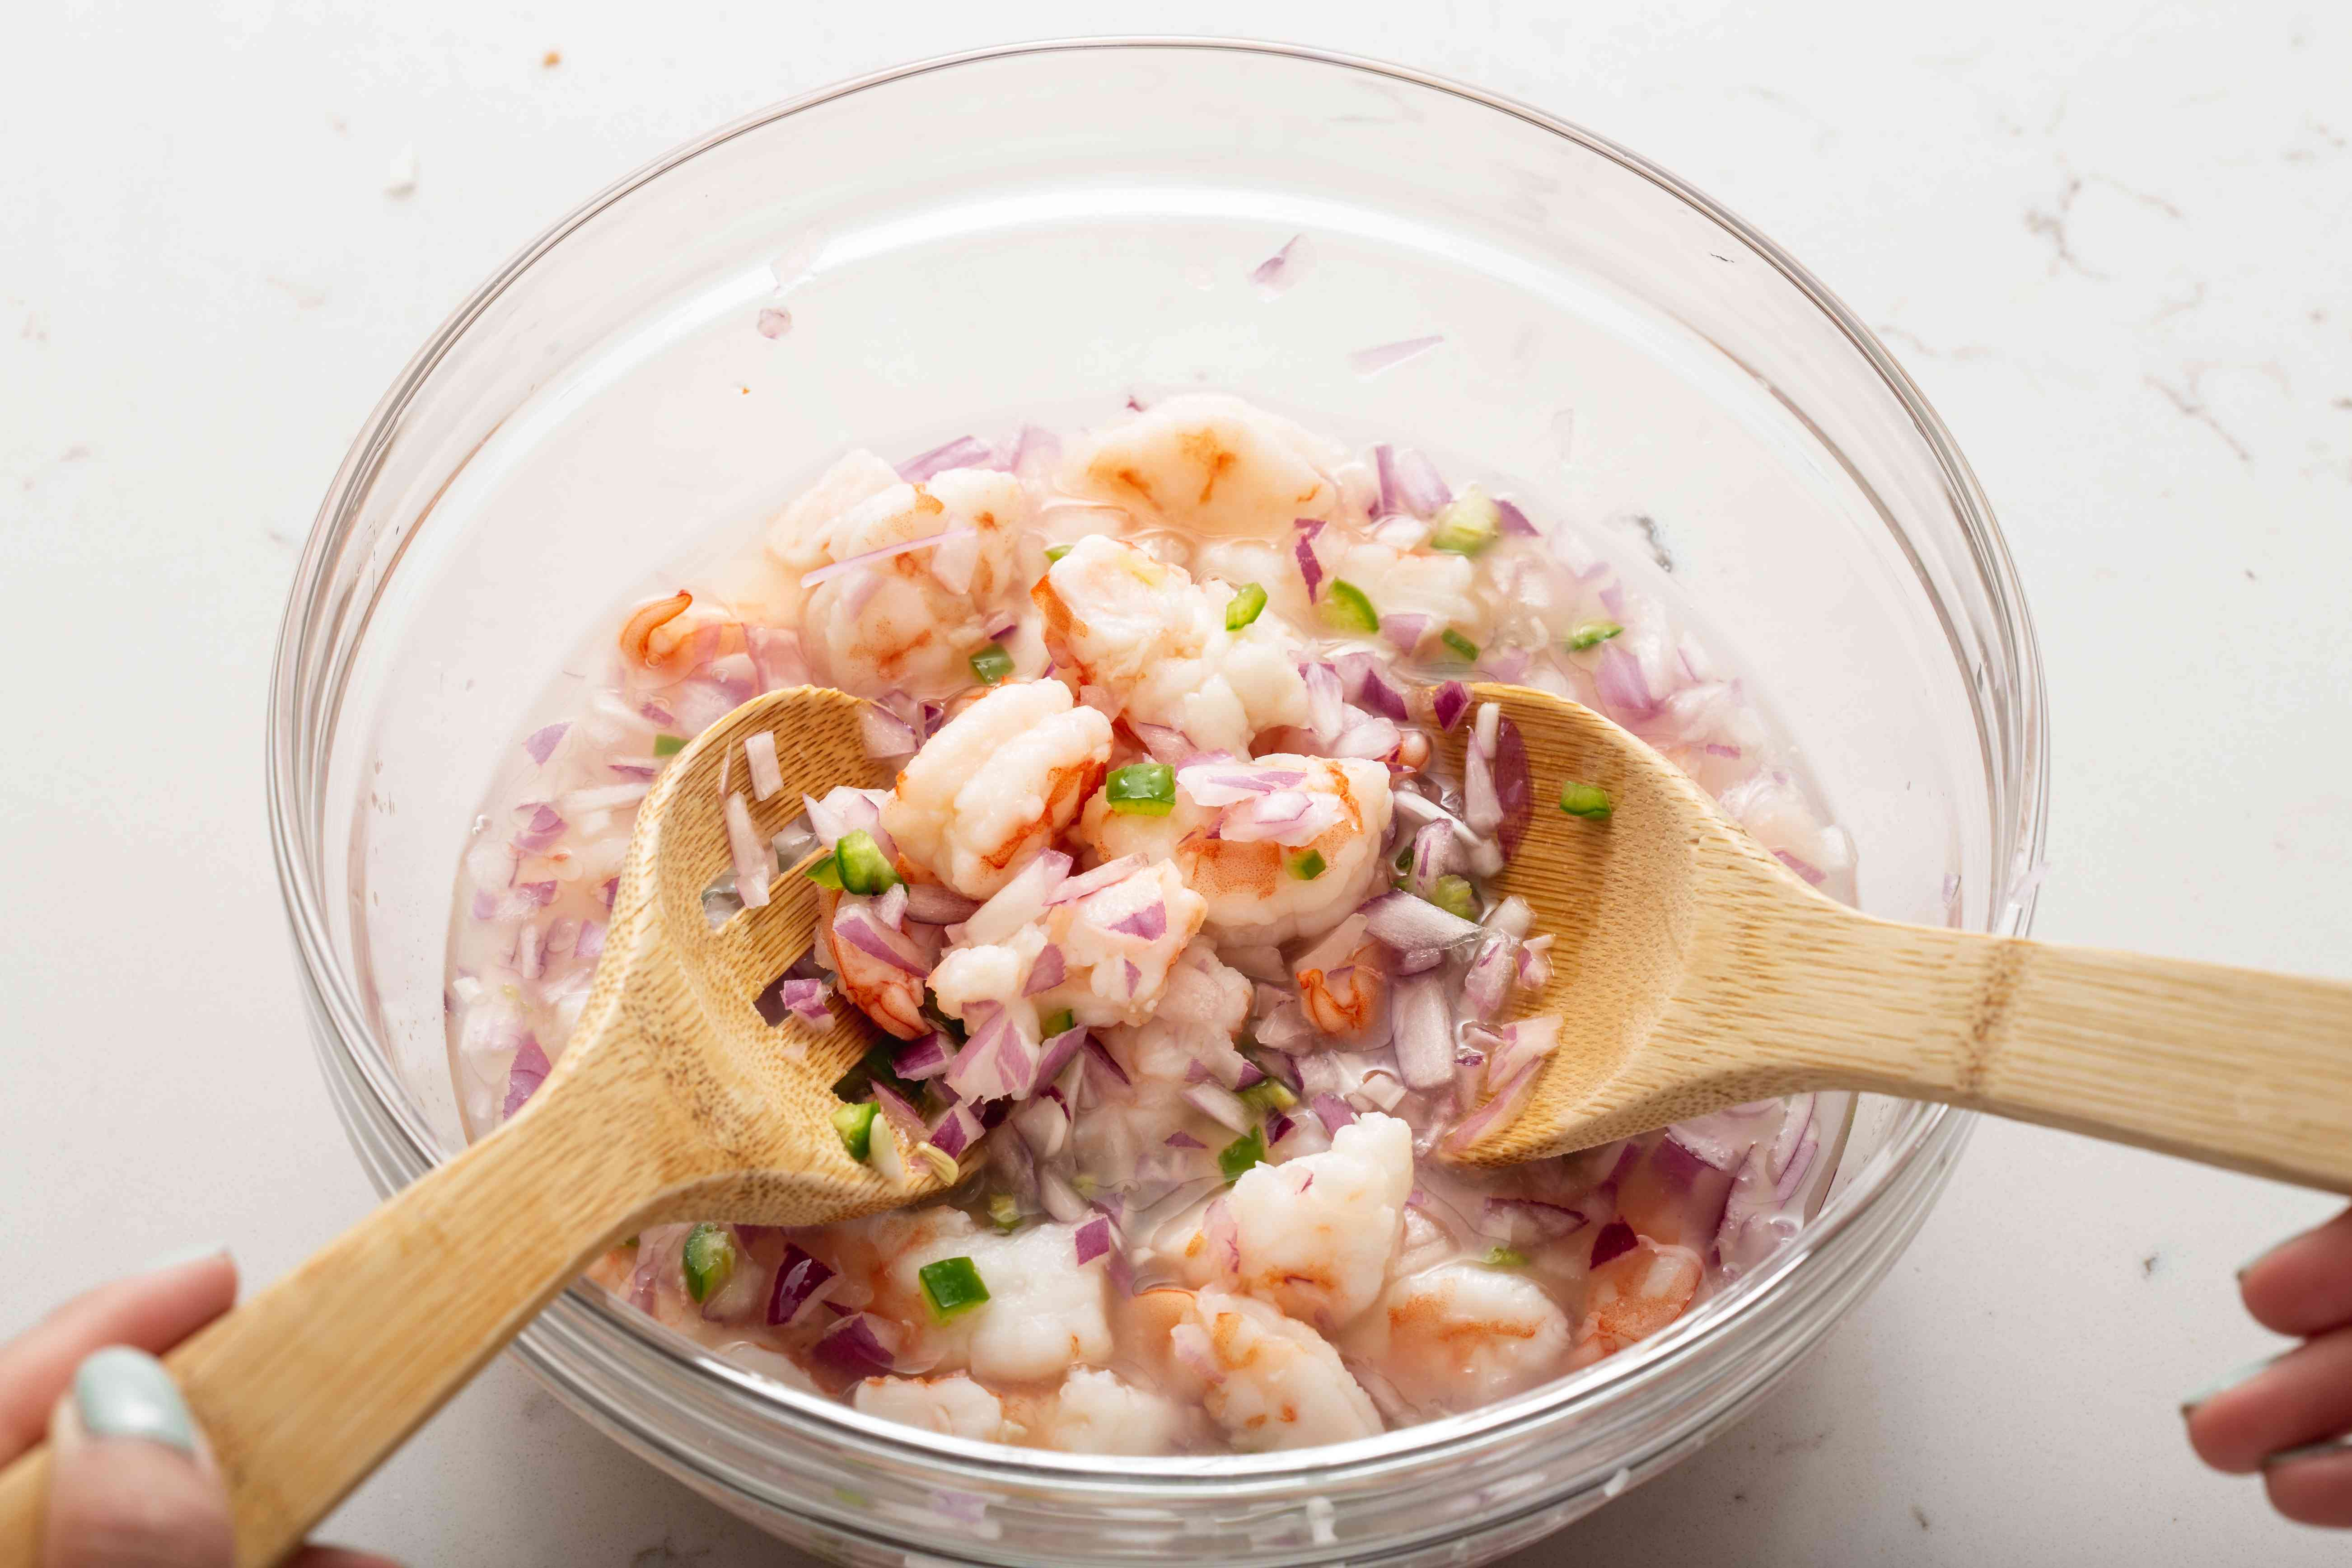 Mixing ingredients to show how to make shrimp ceviche.